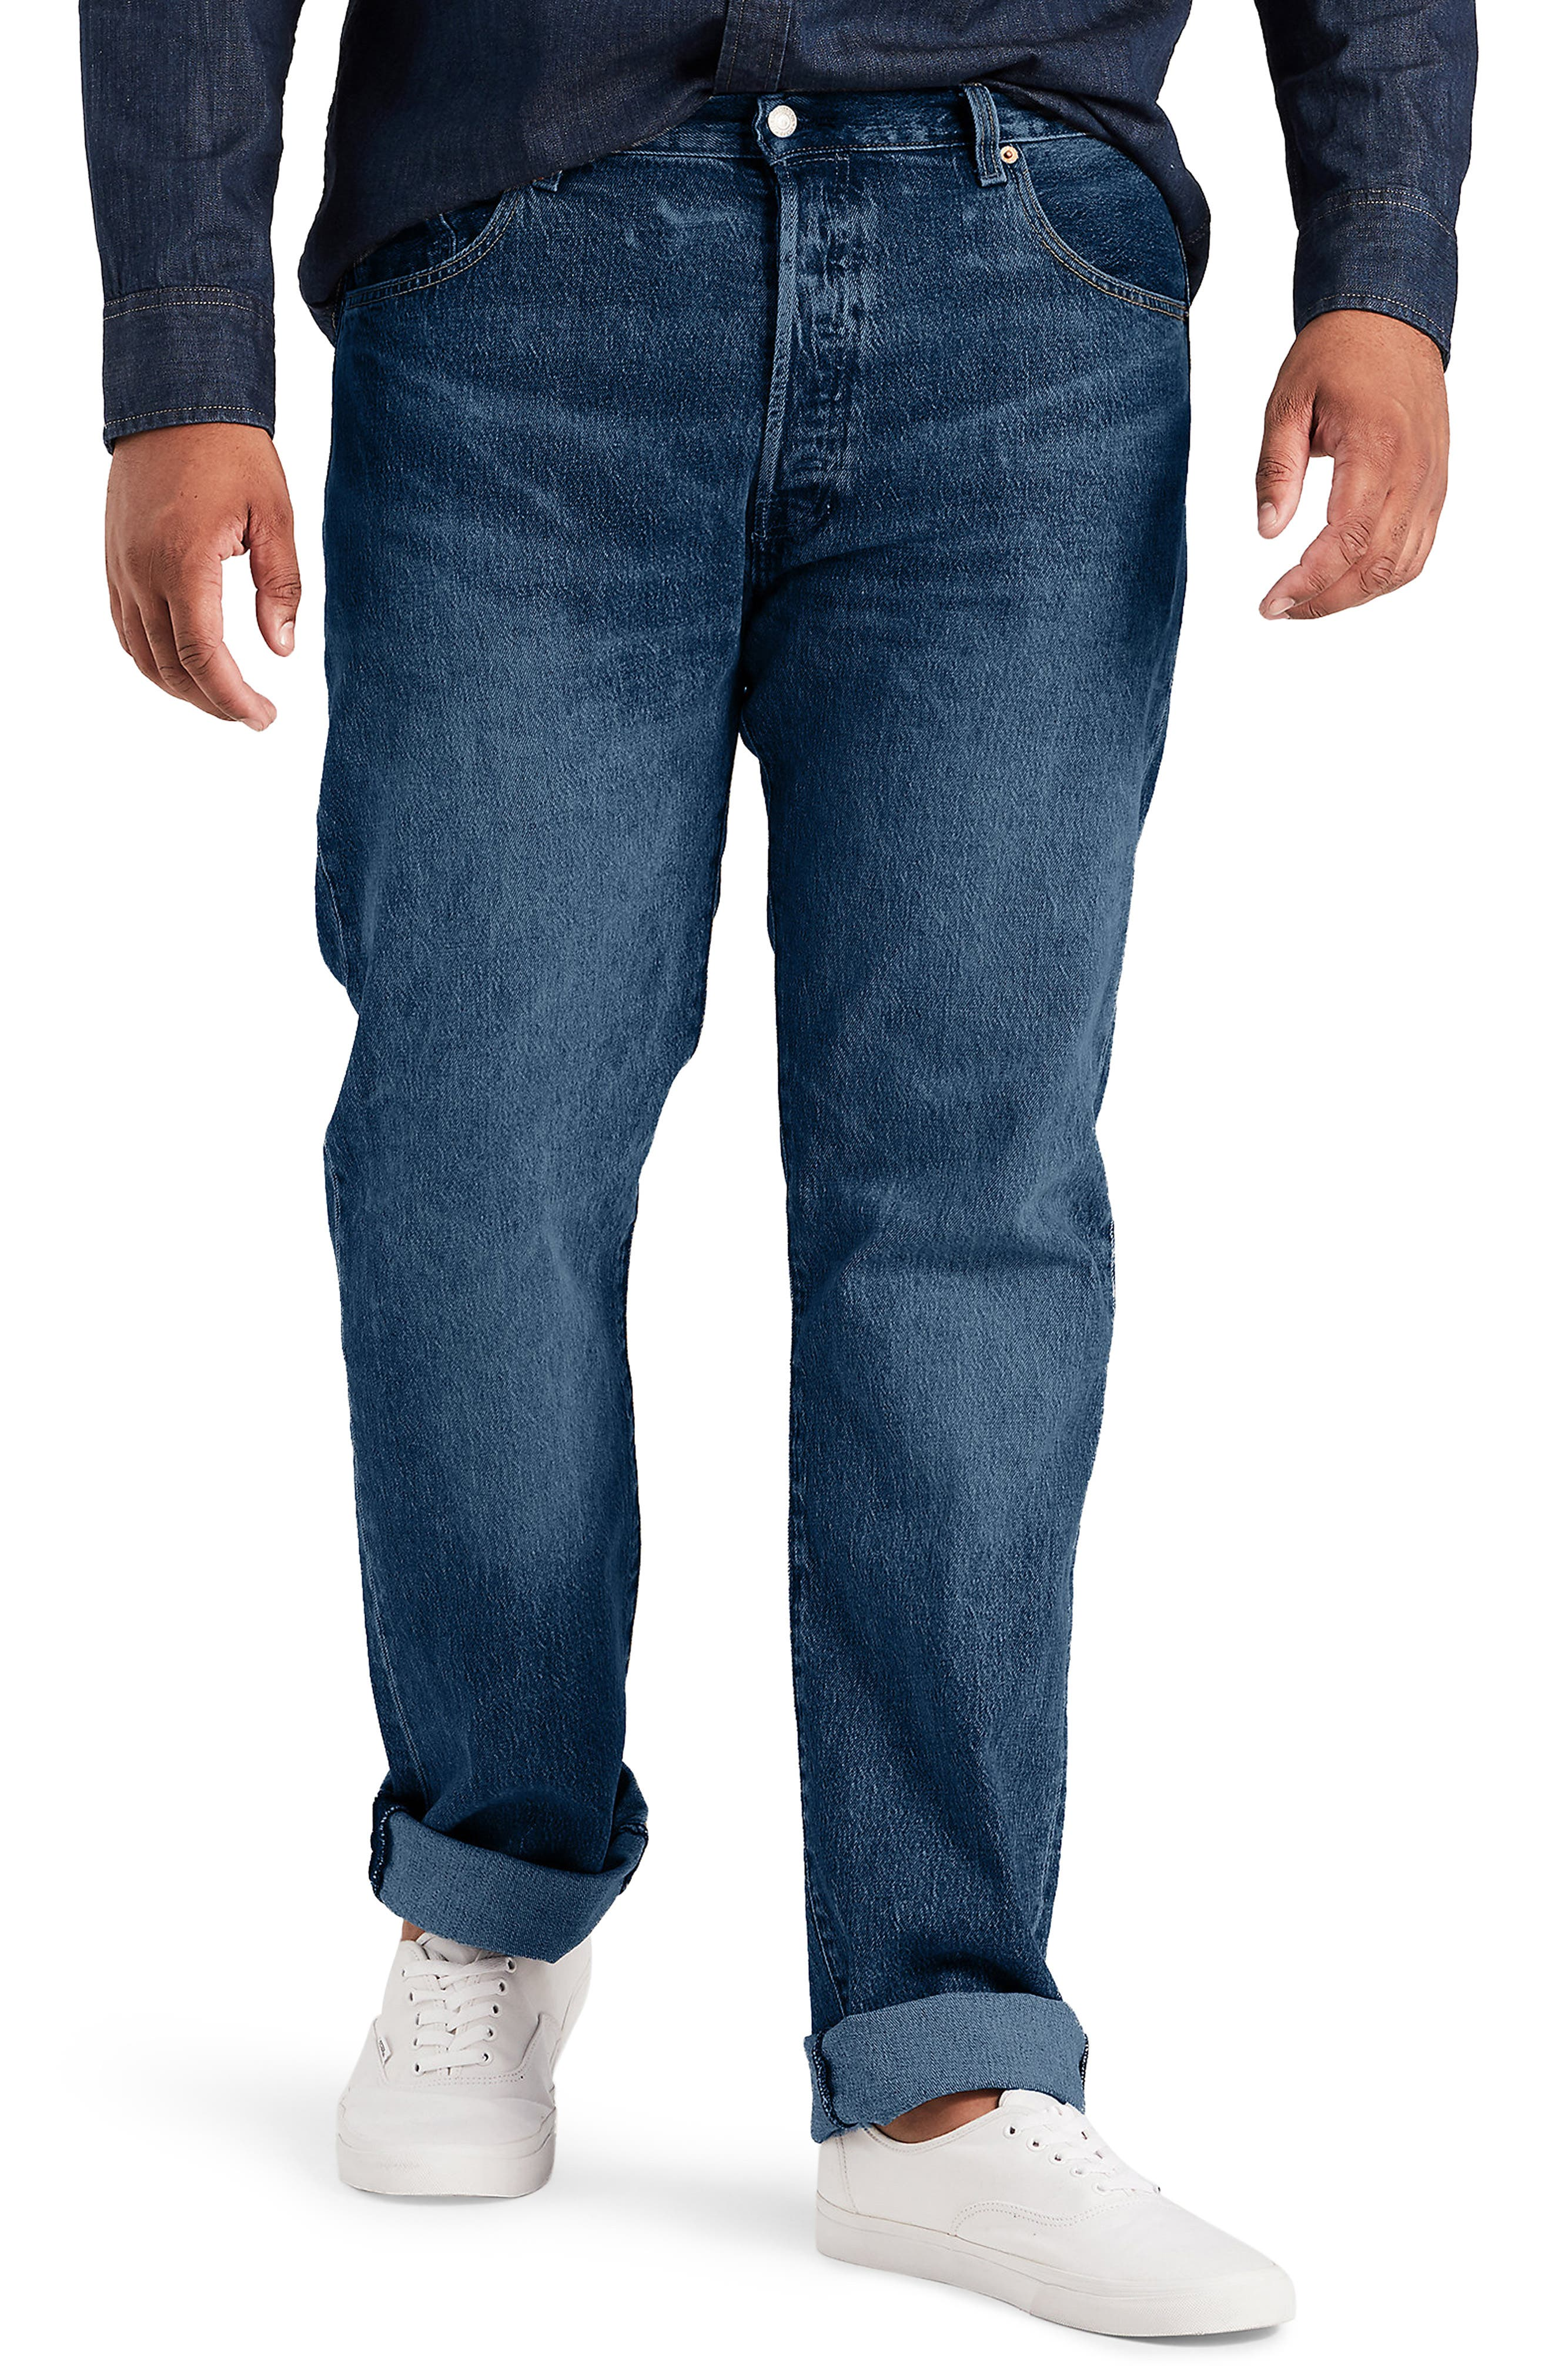 LEVI'S<SUP>®</SUP> 501<sup>®</sup> Straight Leg Jeans, Main, color, DAIRY WHIPPED